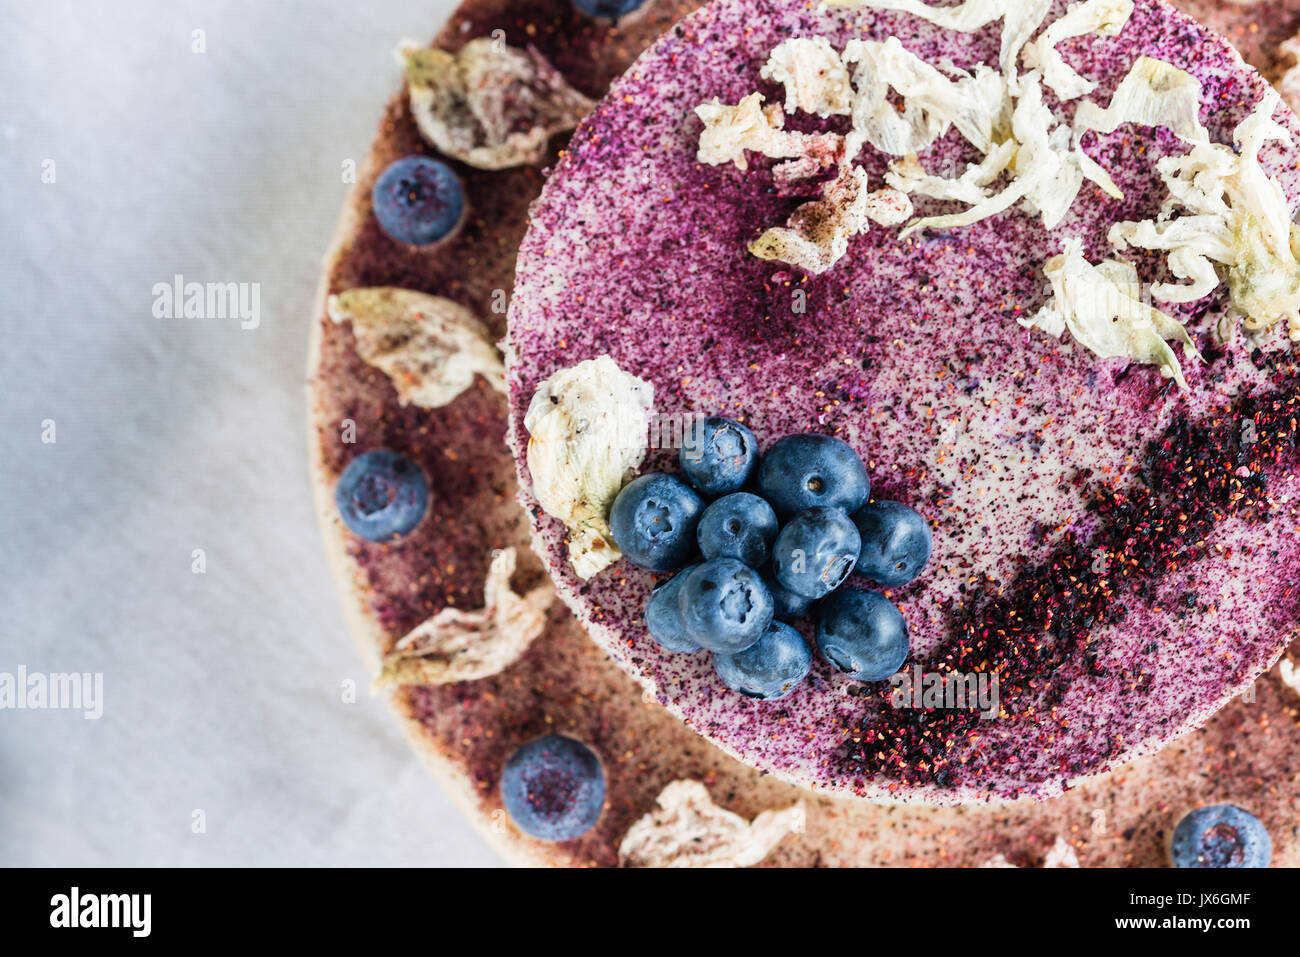 Raw blueberry cheesecake, homemade with decoration of dried flowers and fresh berries. Healthy handmade dessert. White background - Stock Image